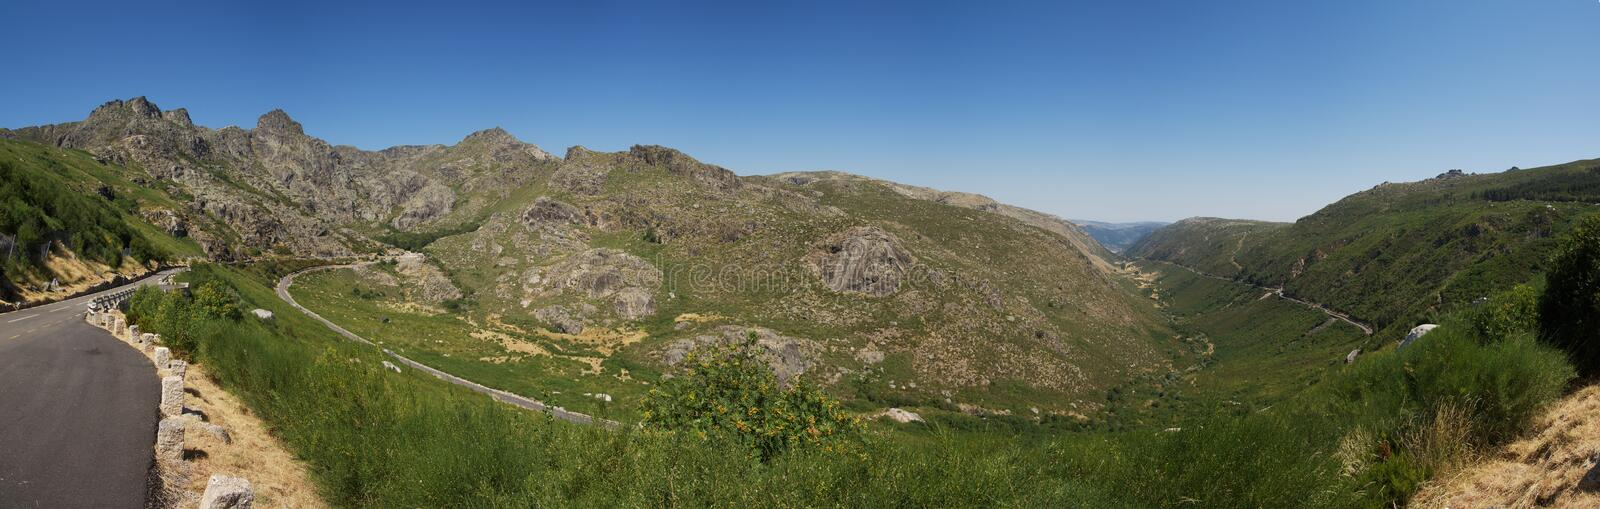 Panorama of glacial valley and Serra da Estrela mountains, Portugal royalty free stock images